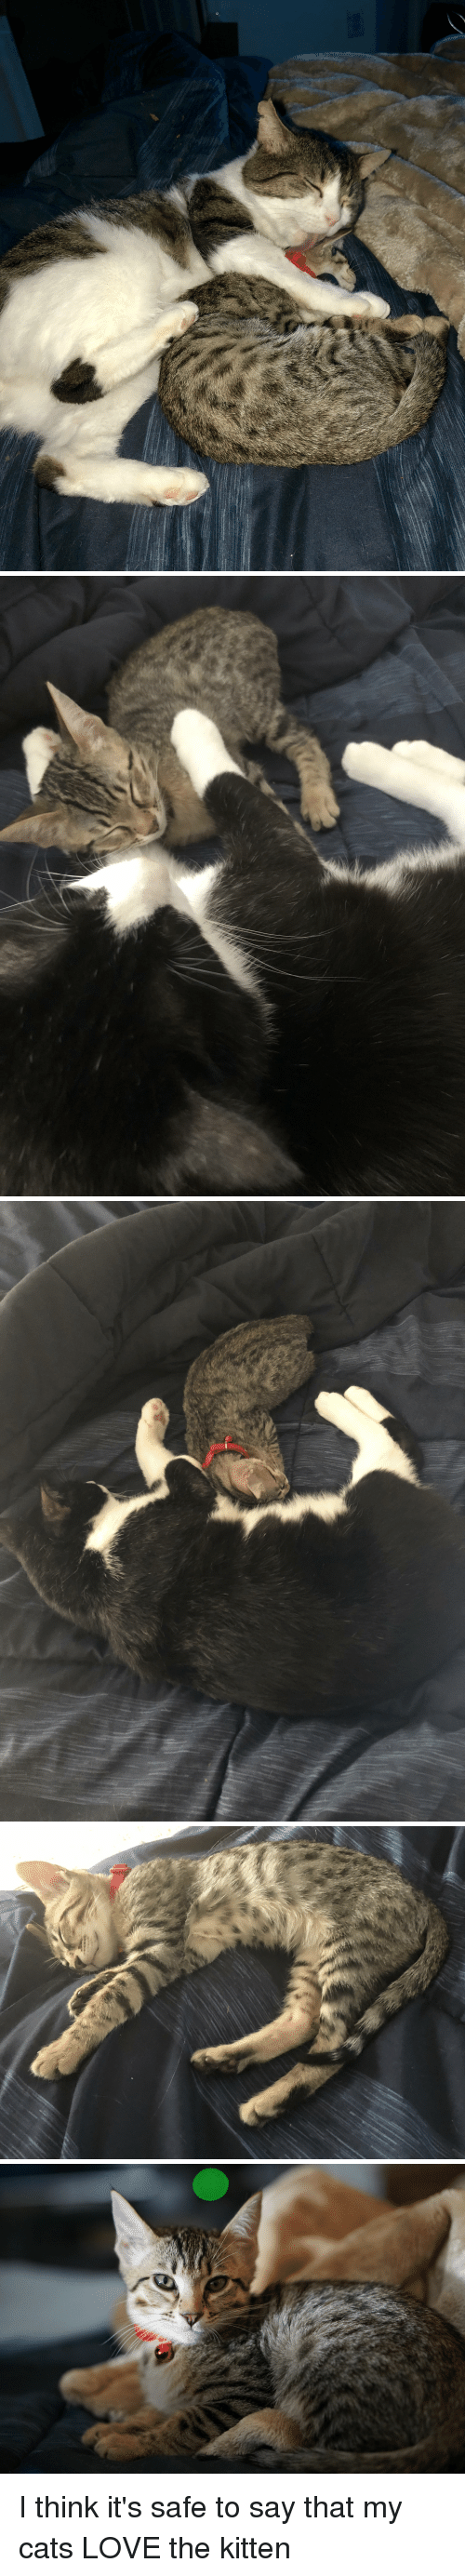 Cats, Love, and Red: I think it's safe to say that my cats LOVE the kitten